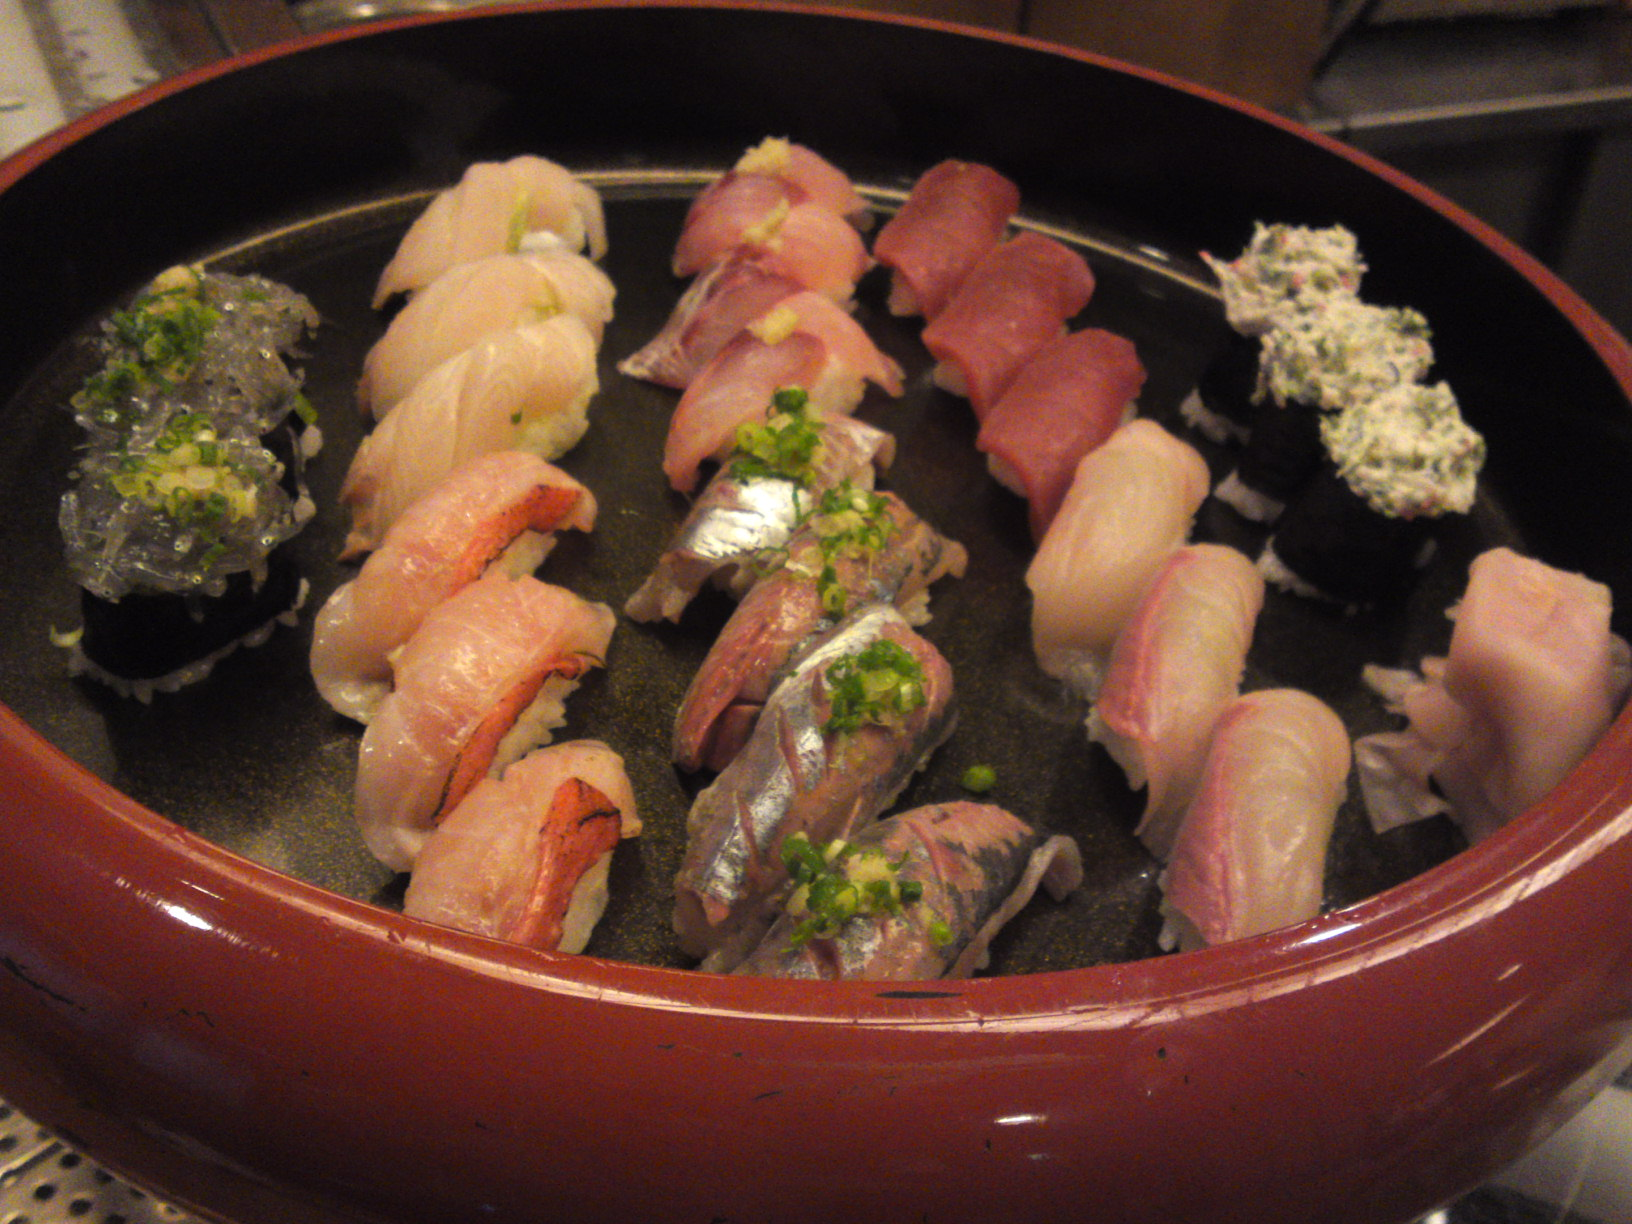 sushi dinner at sushi ko in shizuoka city may 8th 2014